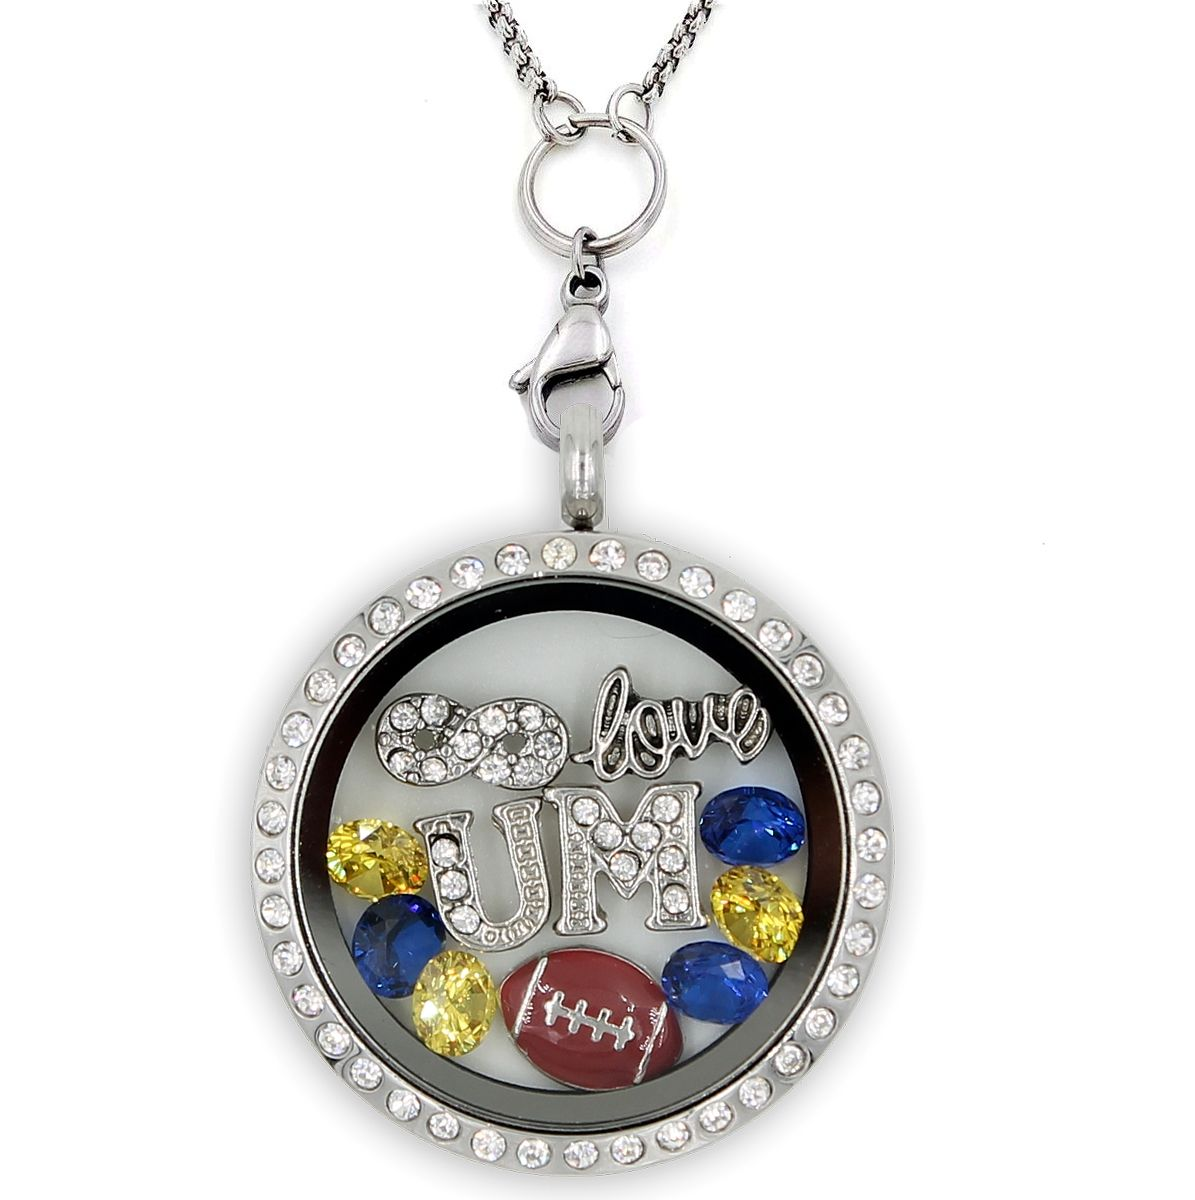 Infinity love michigan football charm necklace order here ududue